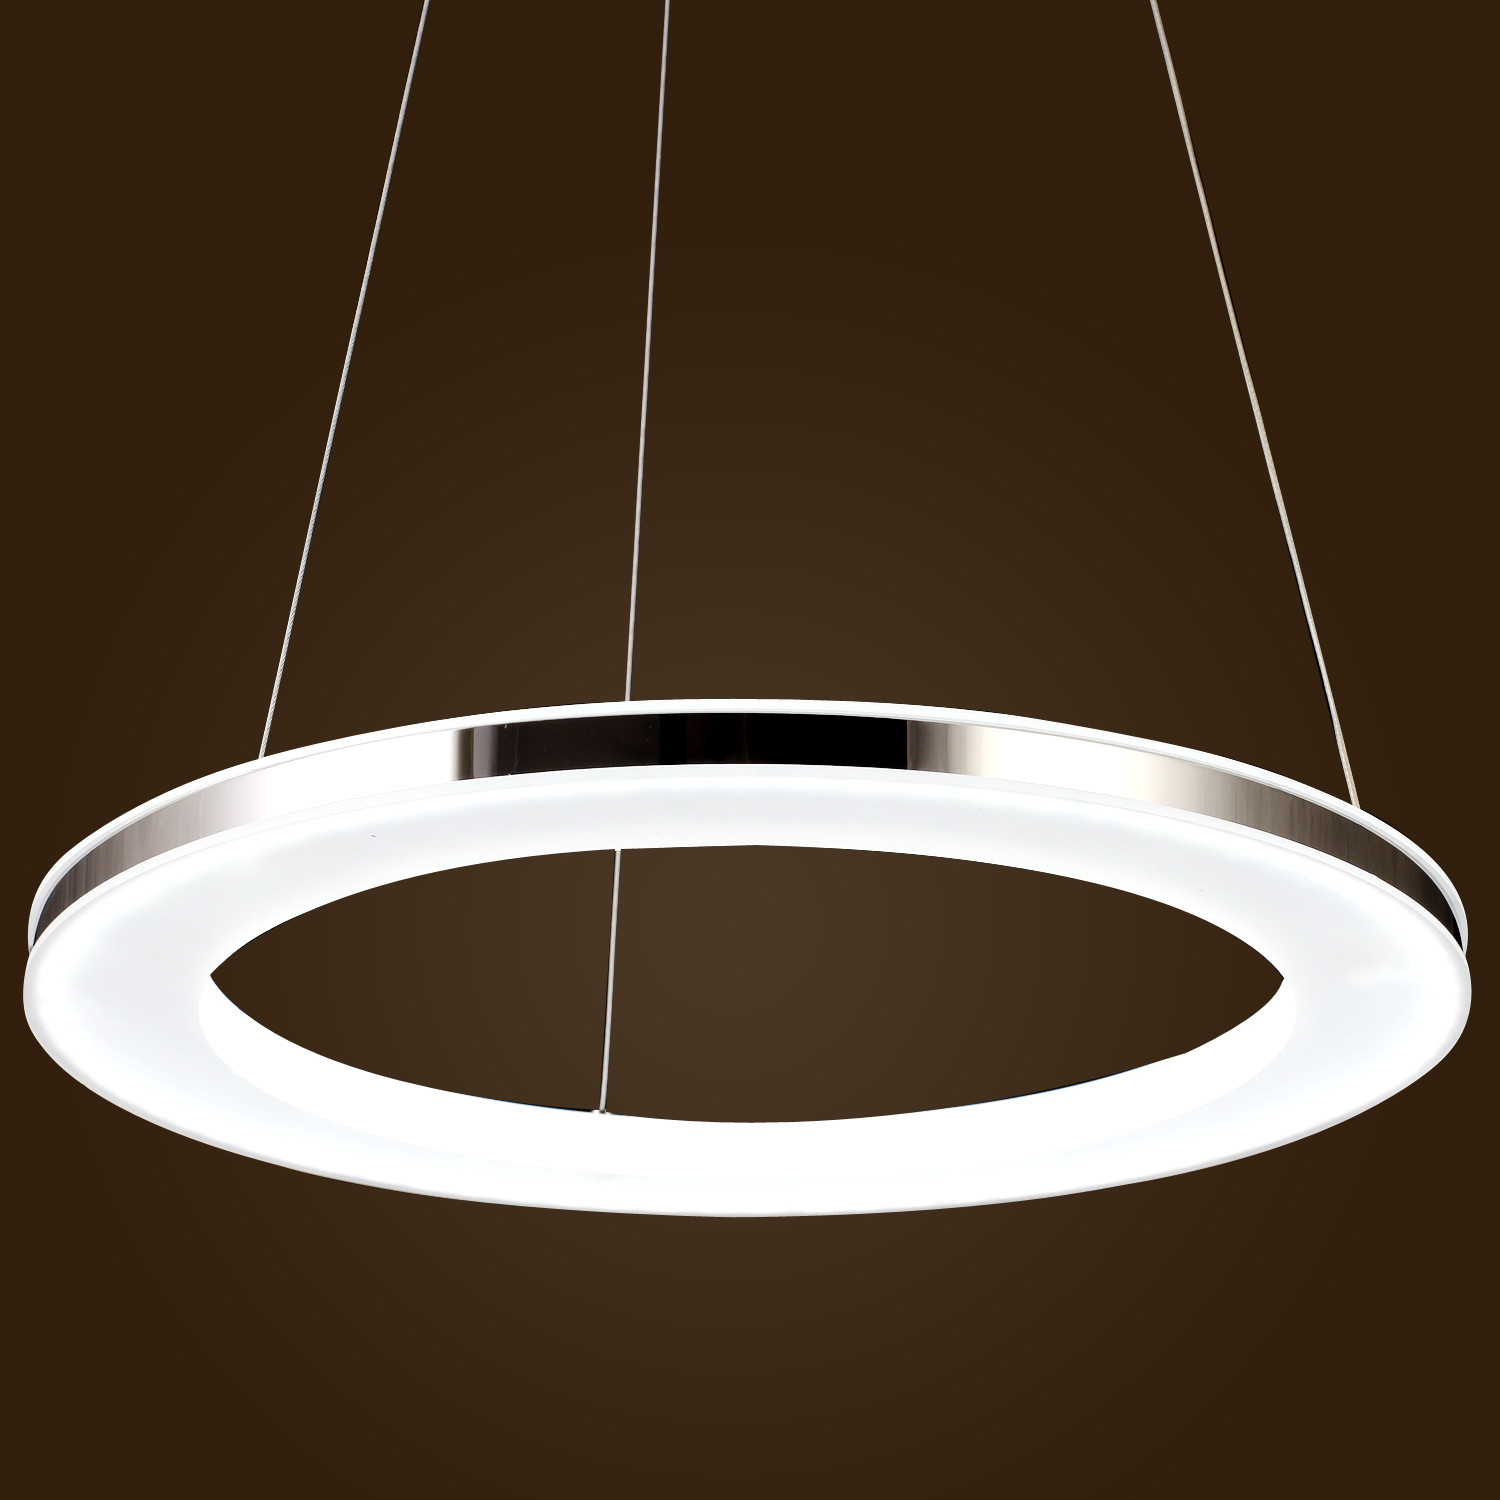 Acrylic pendant ceiling light led modern chandelier chic Modern pendant lighting